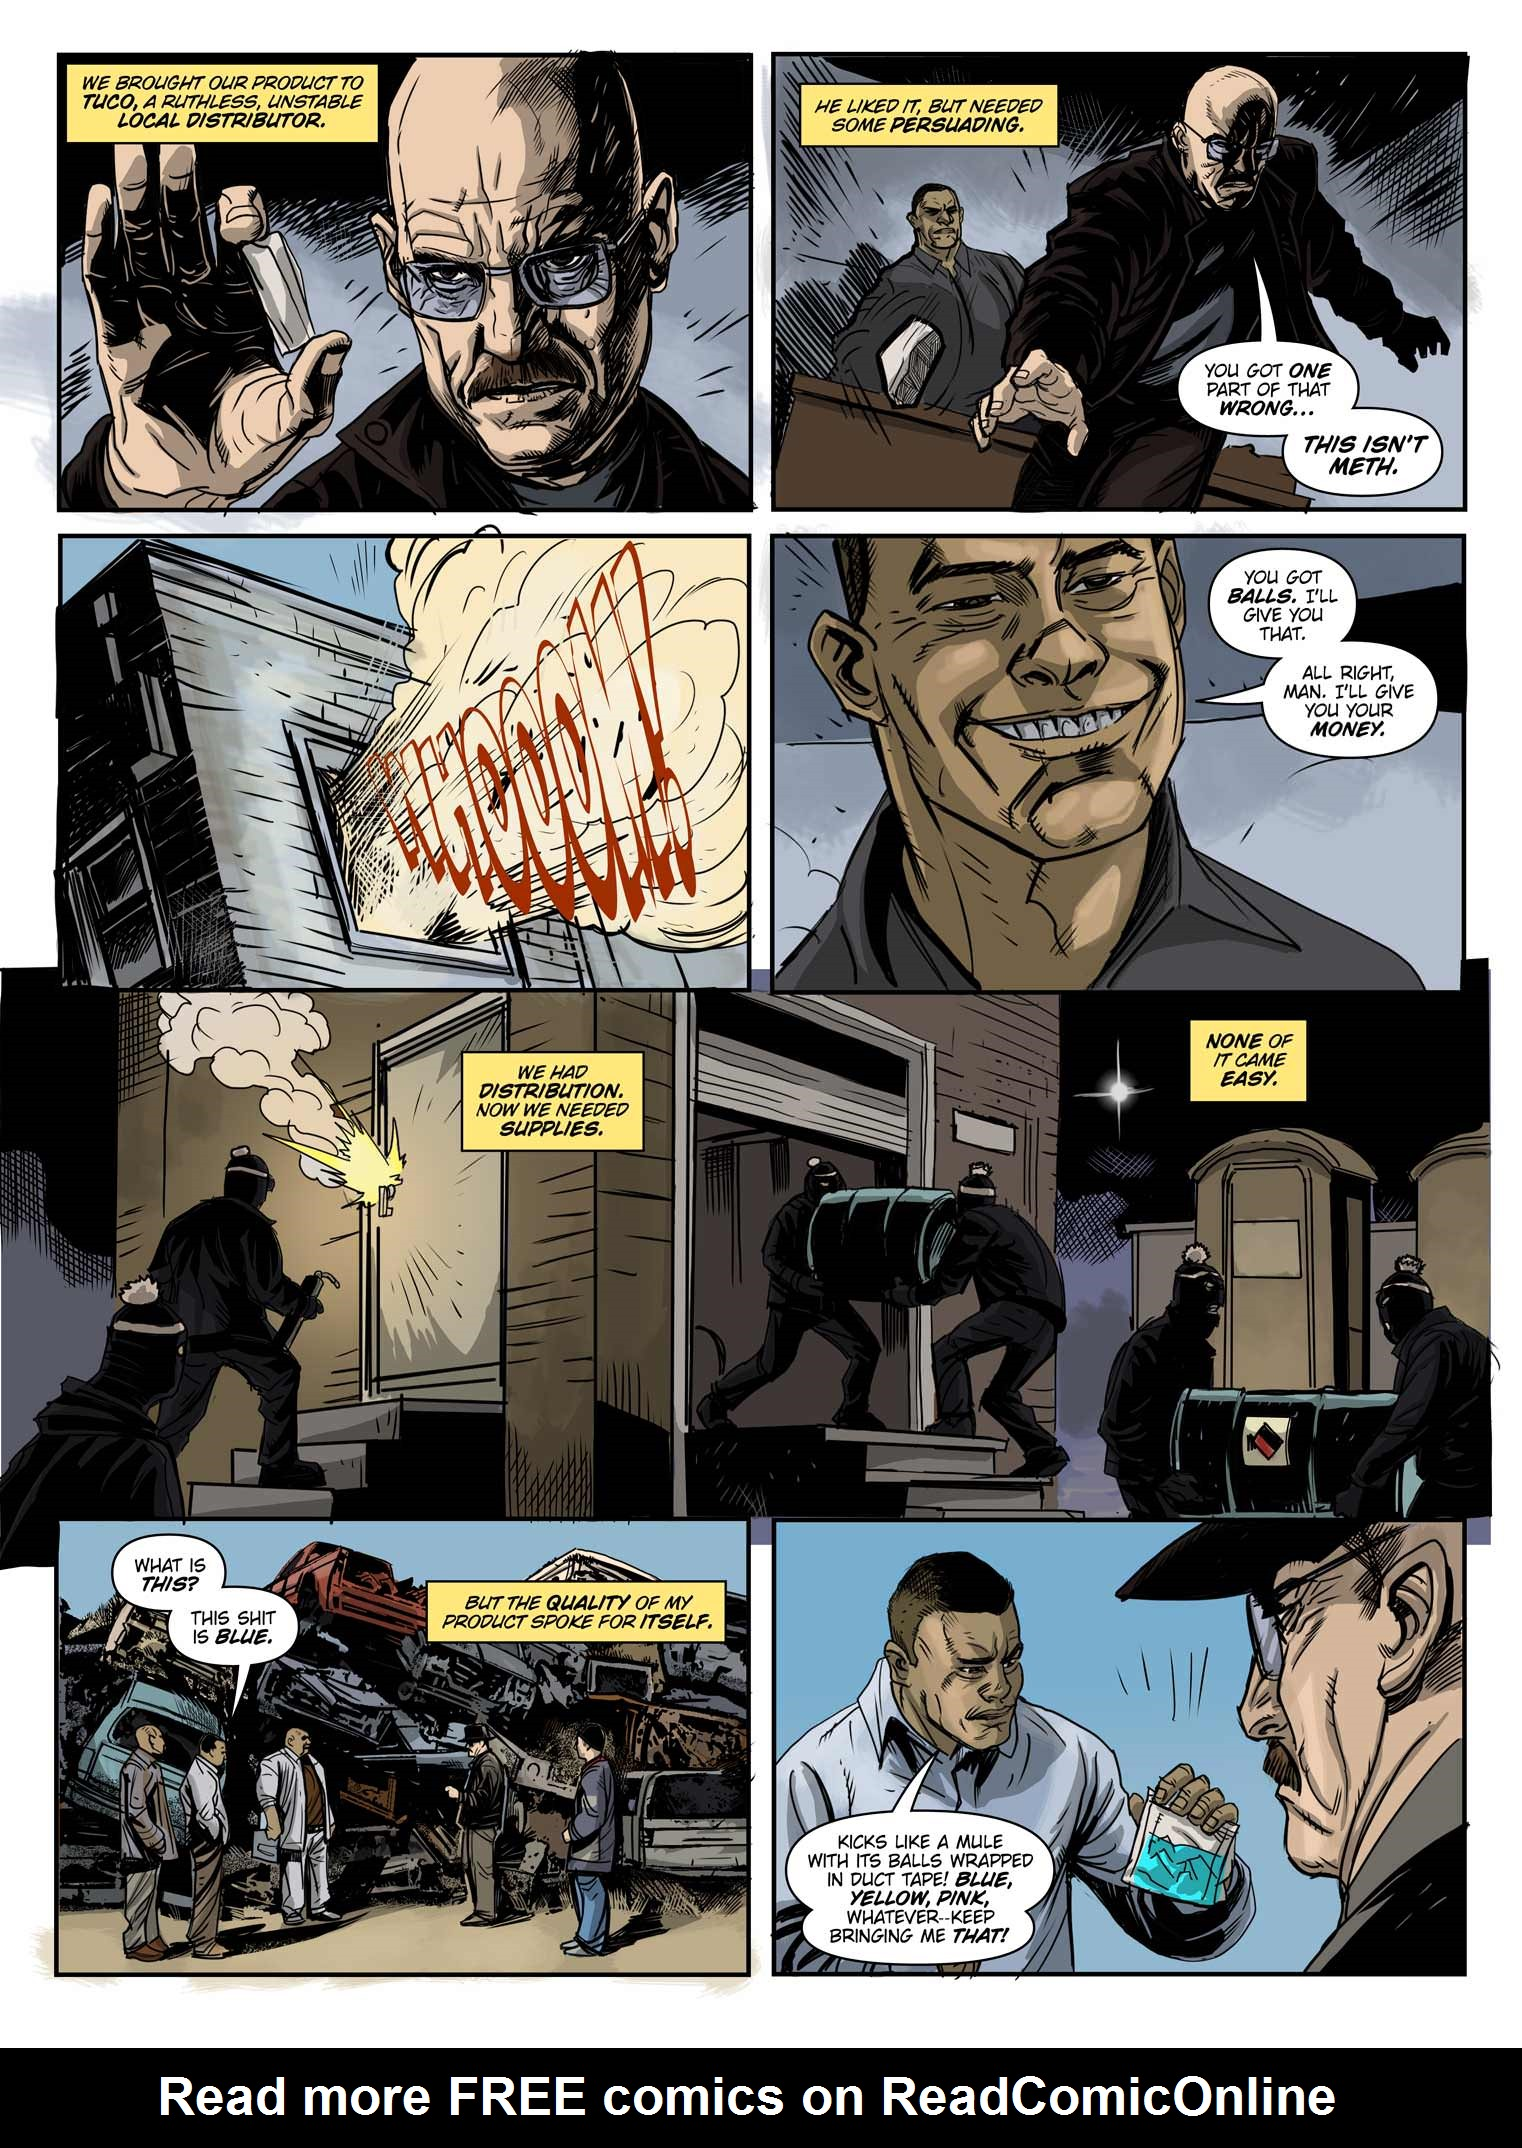 Read online Breaking Bad: All Bad Things comic -  Issue # Full - 5